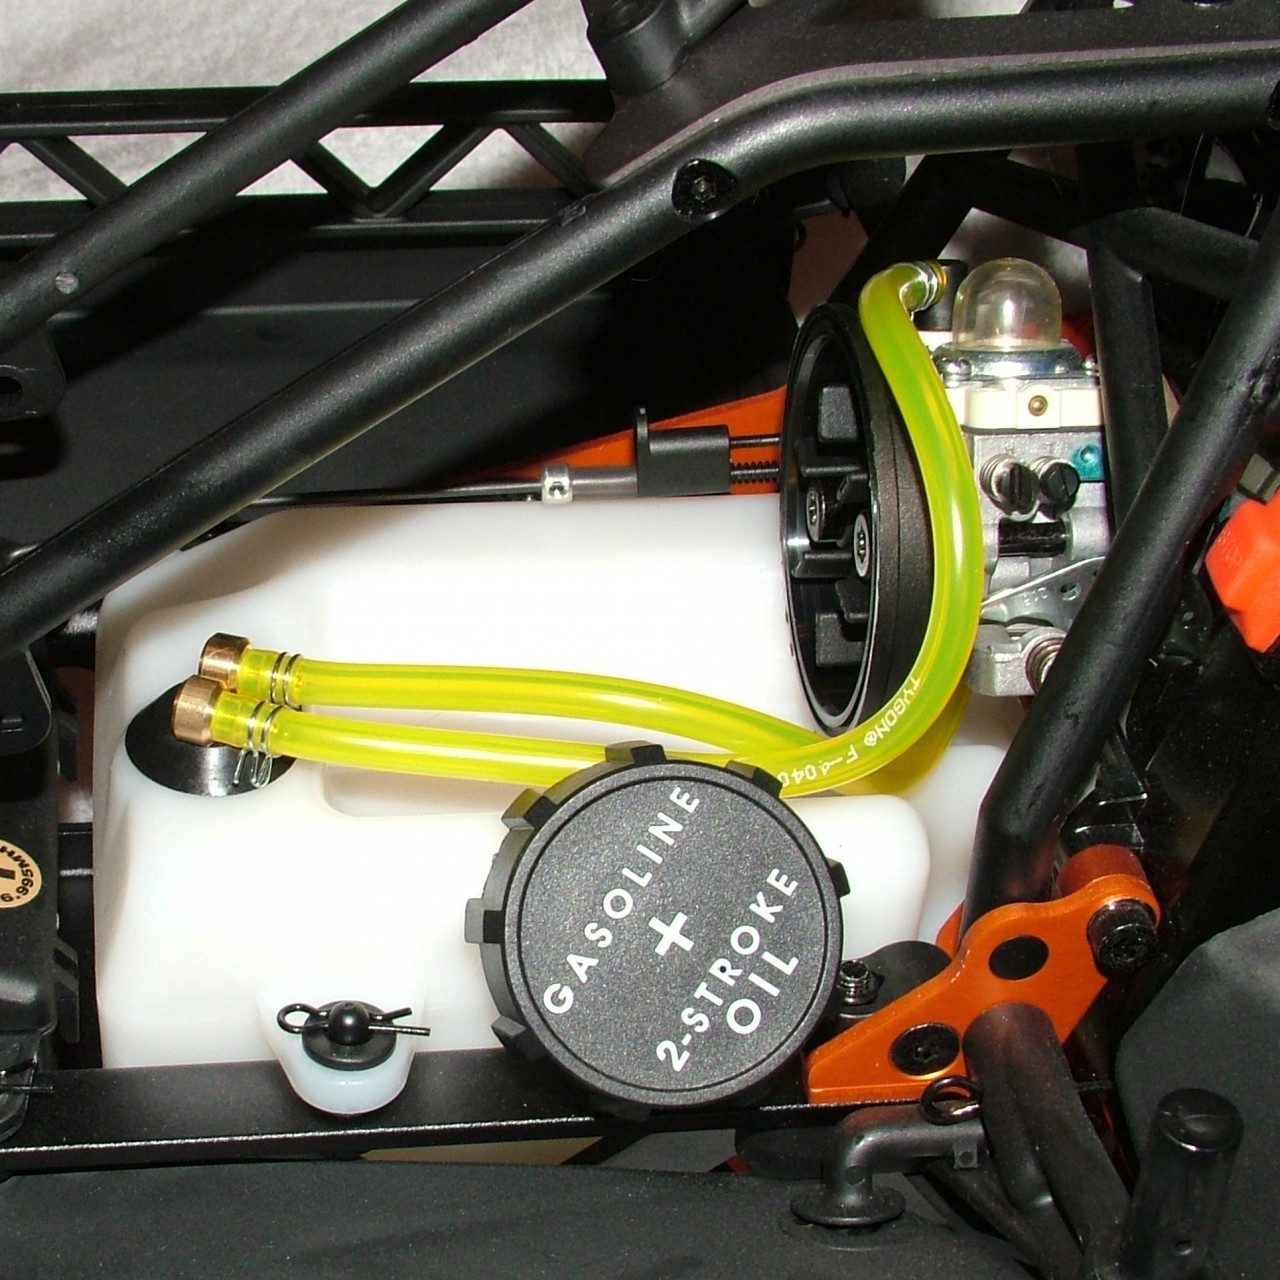 BAJA 2nd GEN. HIGH FLOW FUEL LINE KIT